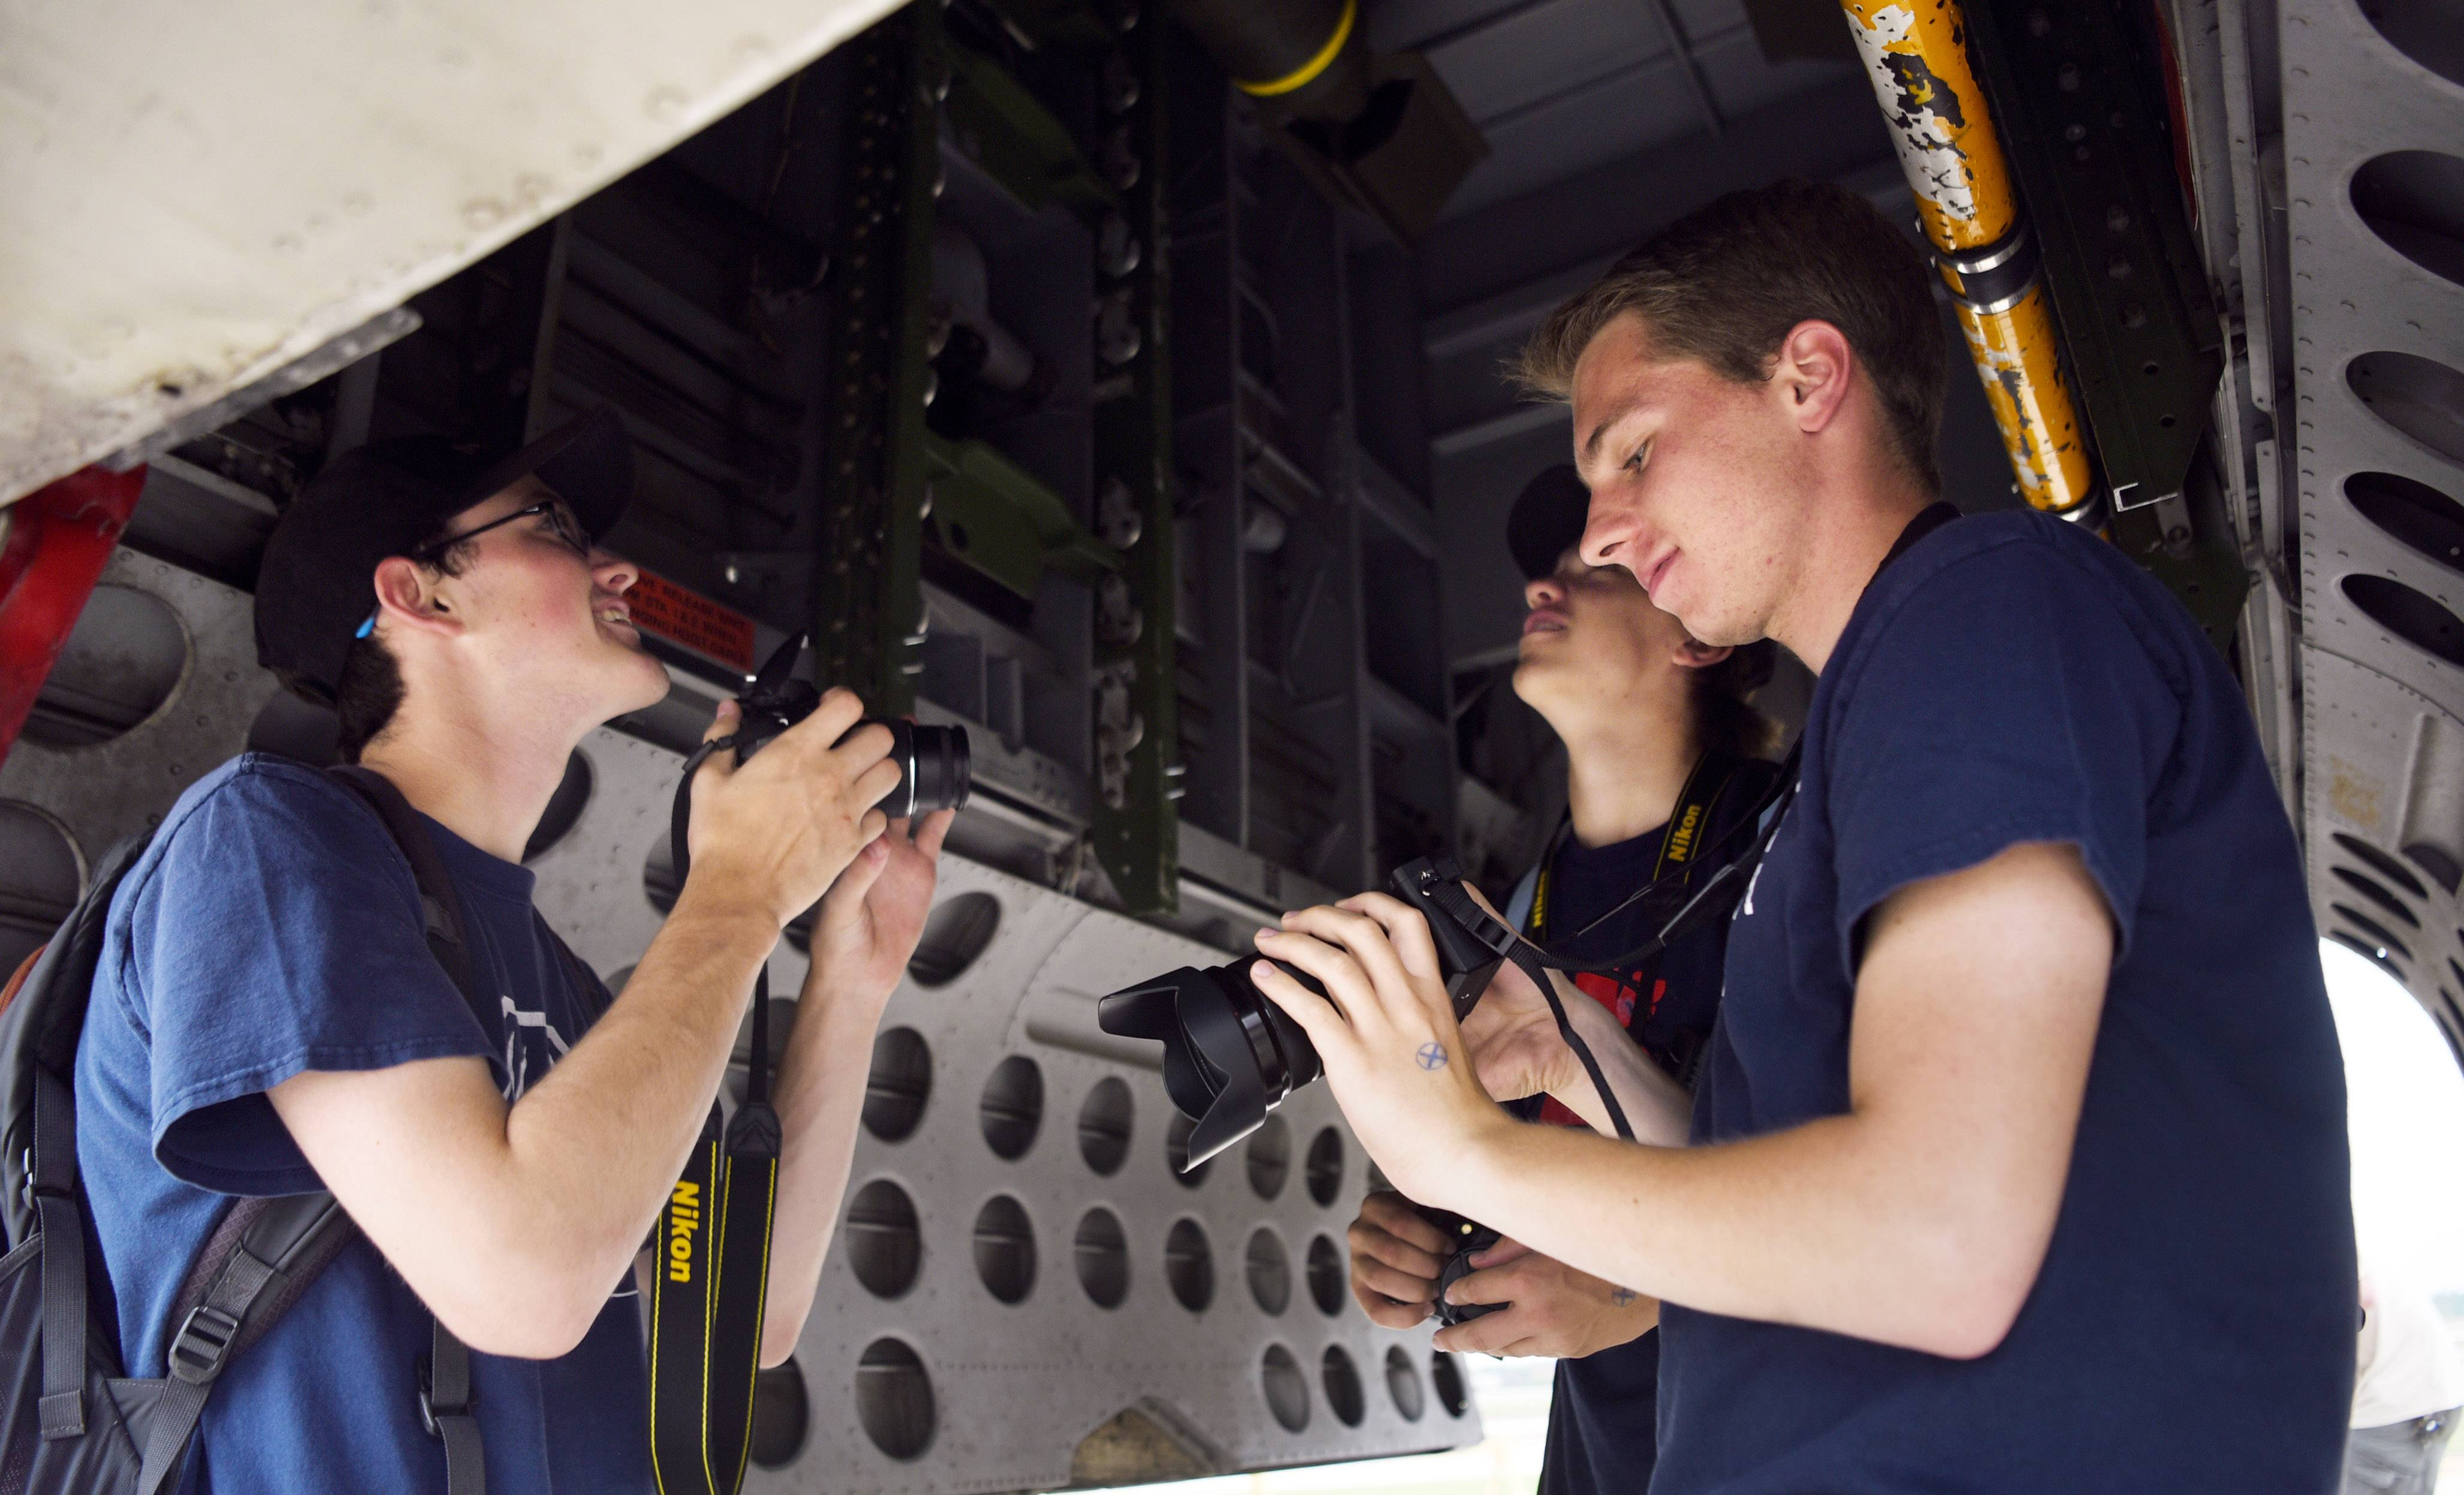 Left to right, Kyle Krinninger, Dave Zeman, and Ryan Heuer, all of Arlington Heights, view the bomb bay of a B-25 Mitchell during the Wings of Freedom tour at Chicago Executive Airport in Wheeling Wednesday.